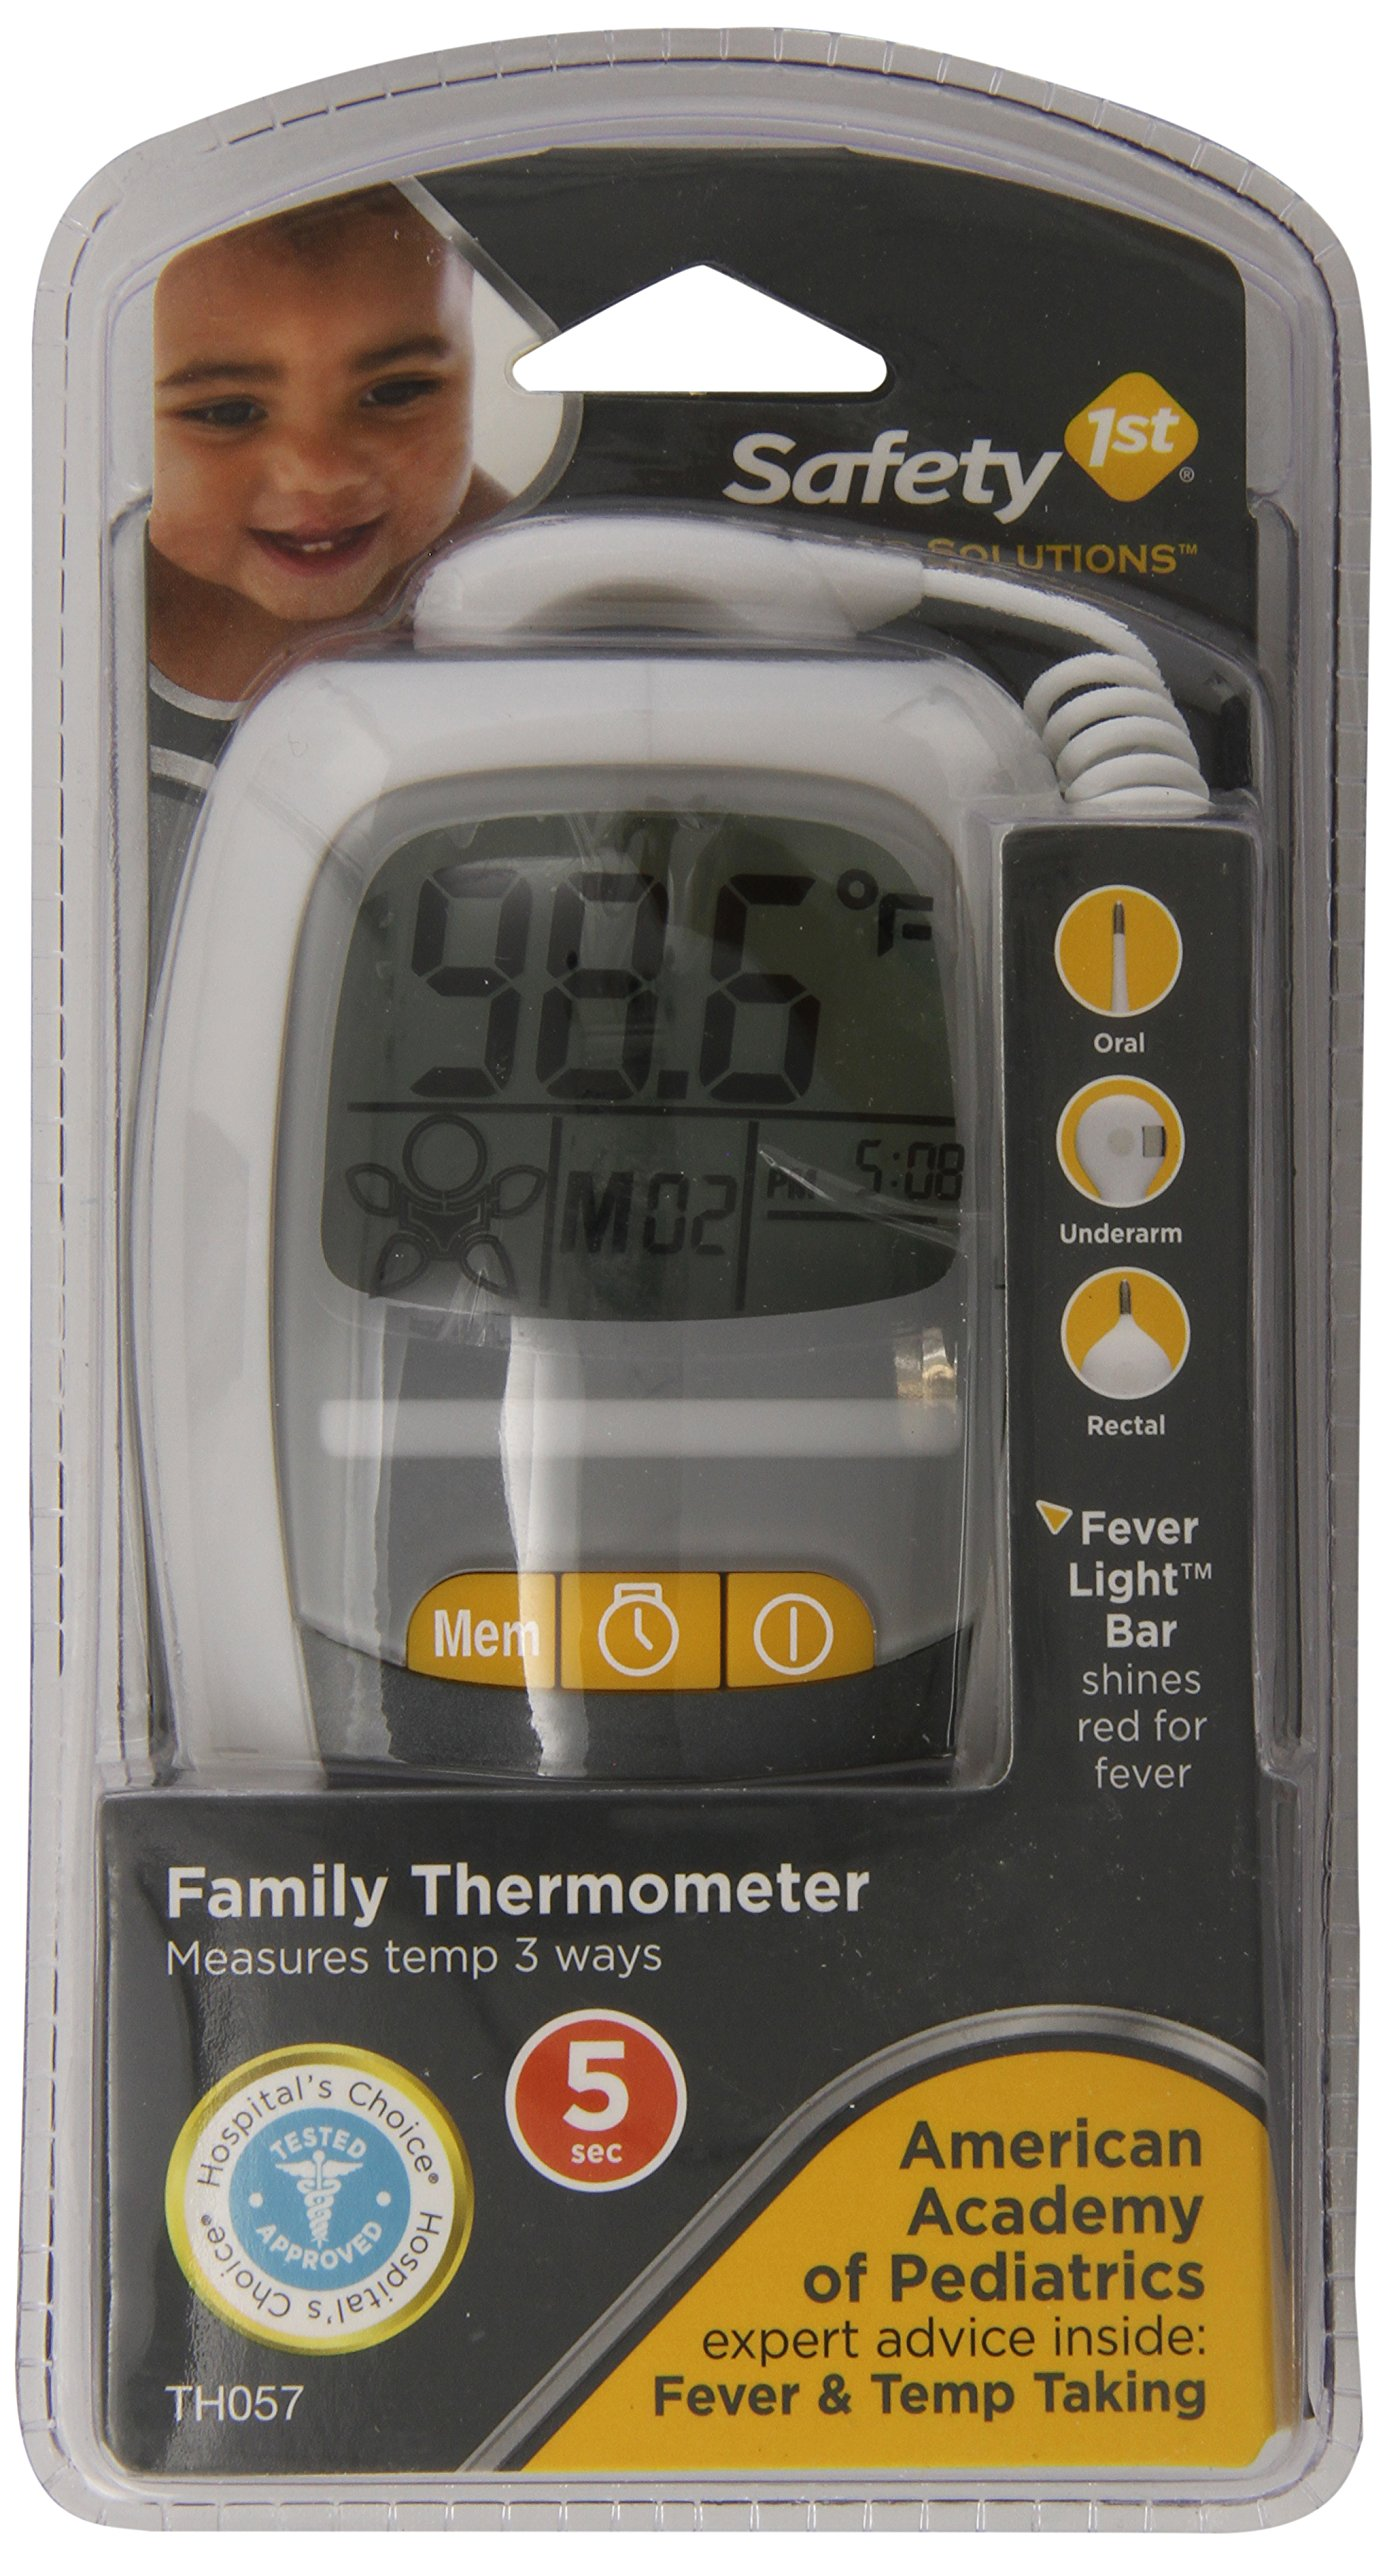 Safety 1st Advanced Solutions Family Thermometer